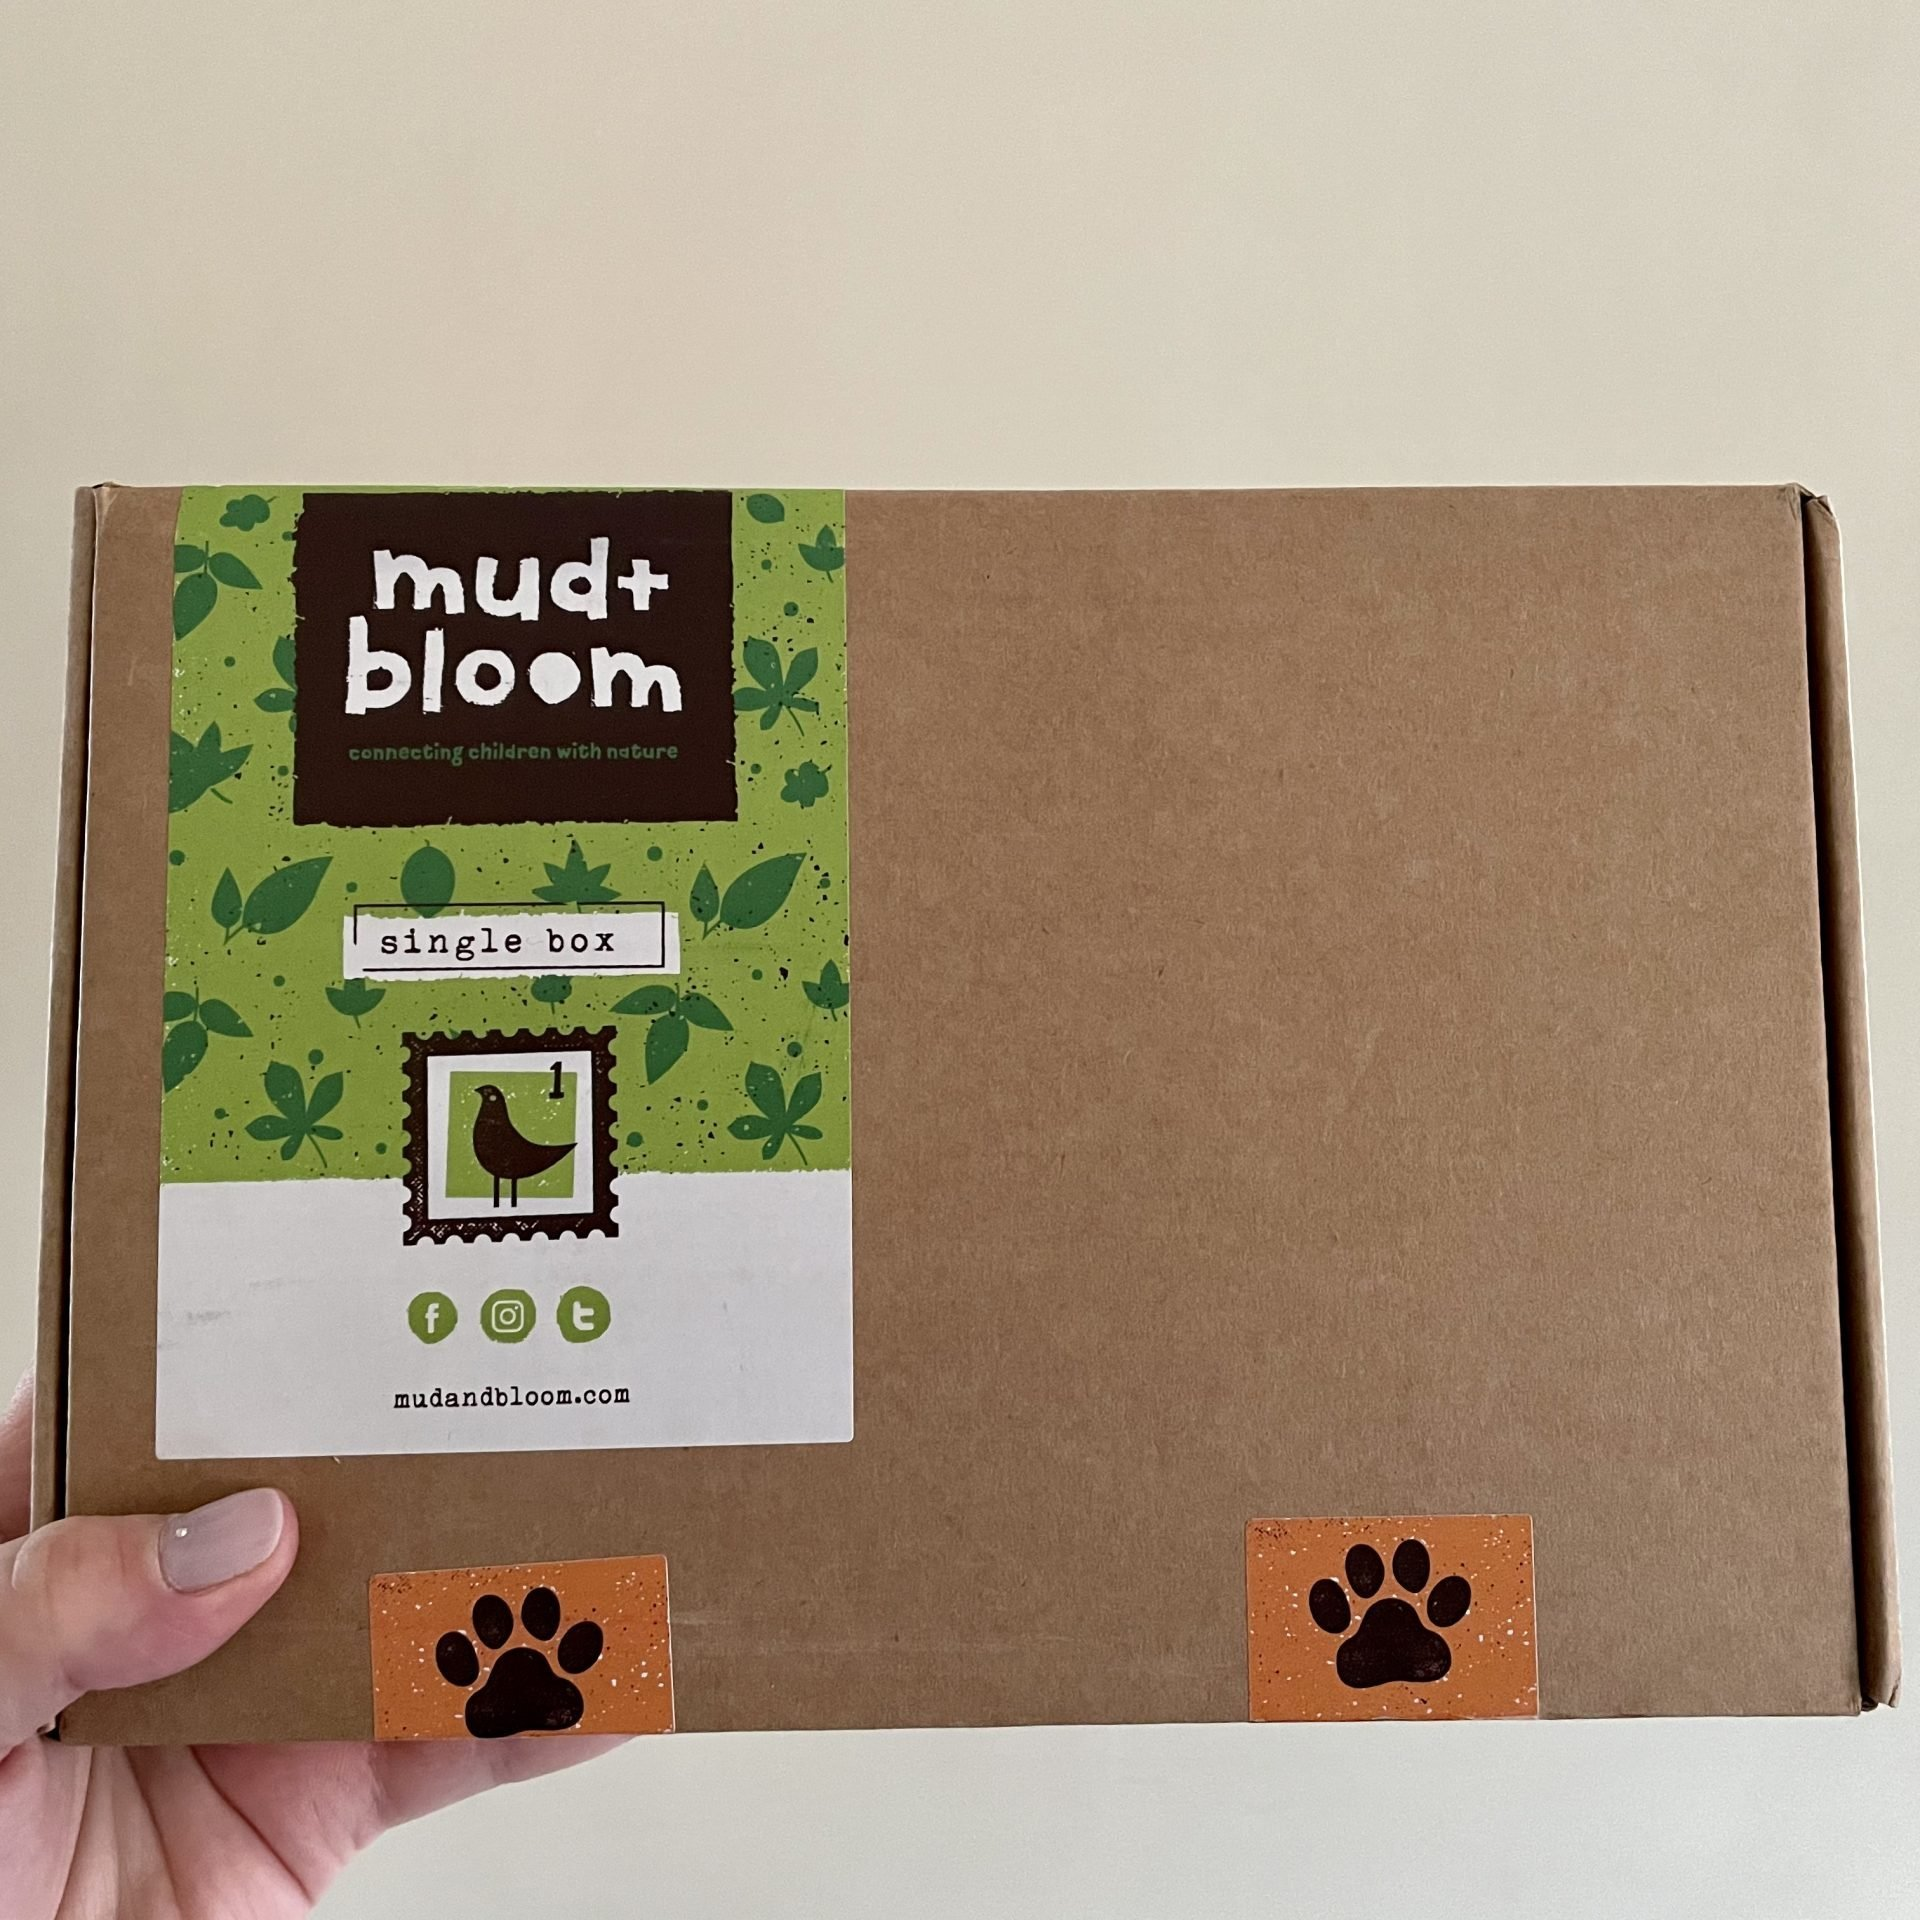 Cardboard Mud and Boom Subscription box being held up by a hand